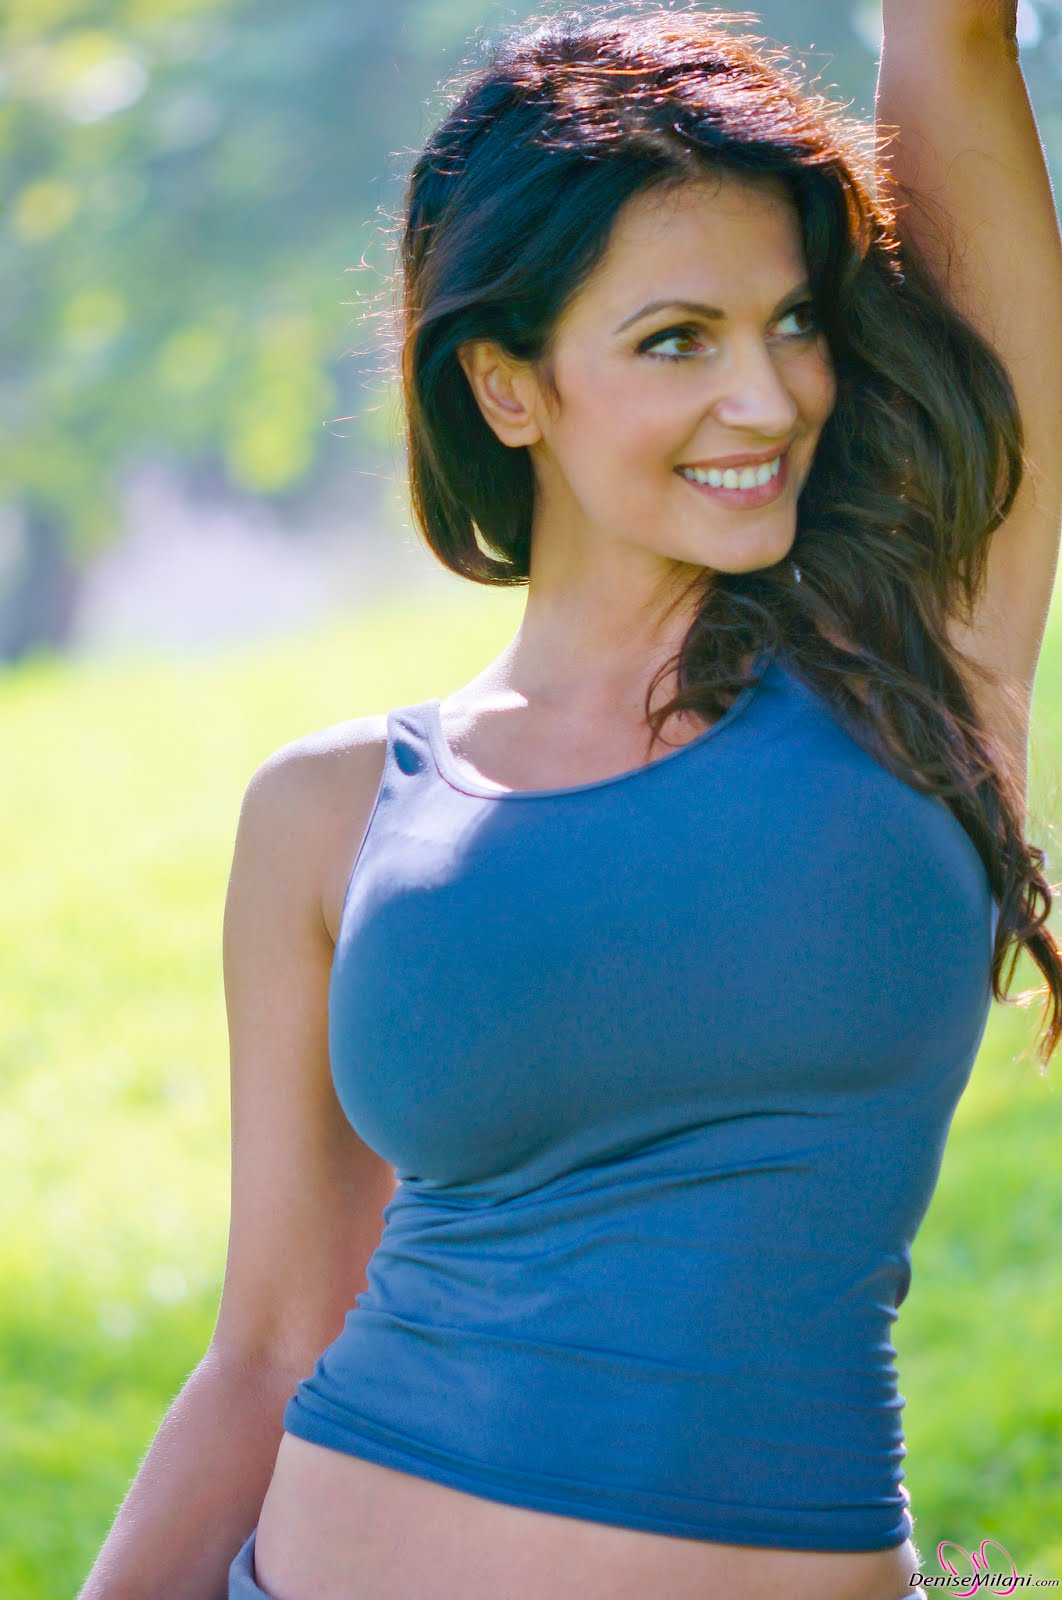 Diya Wallpaper Hd Latest Celebrity Pictures Indian Sexy Actress Gallery